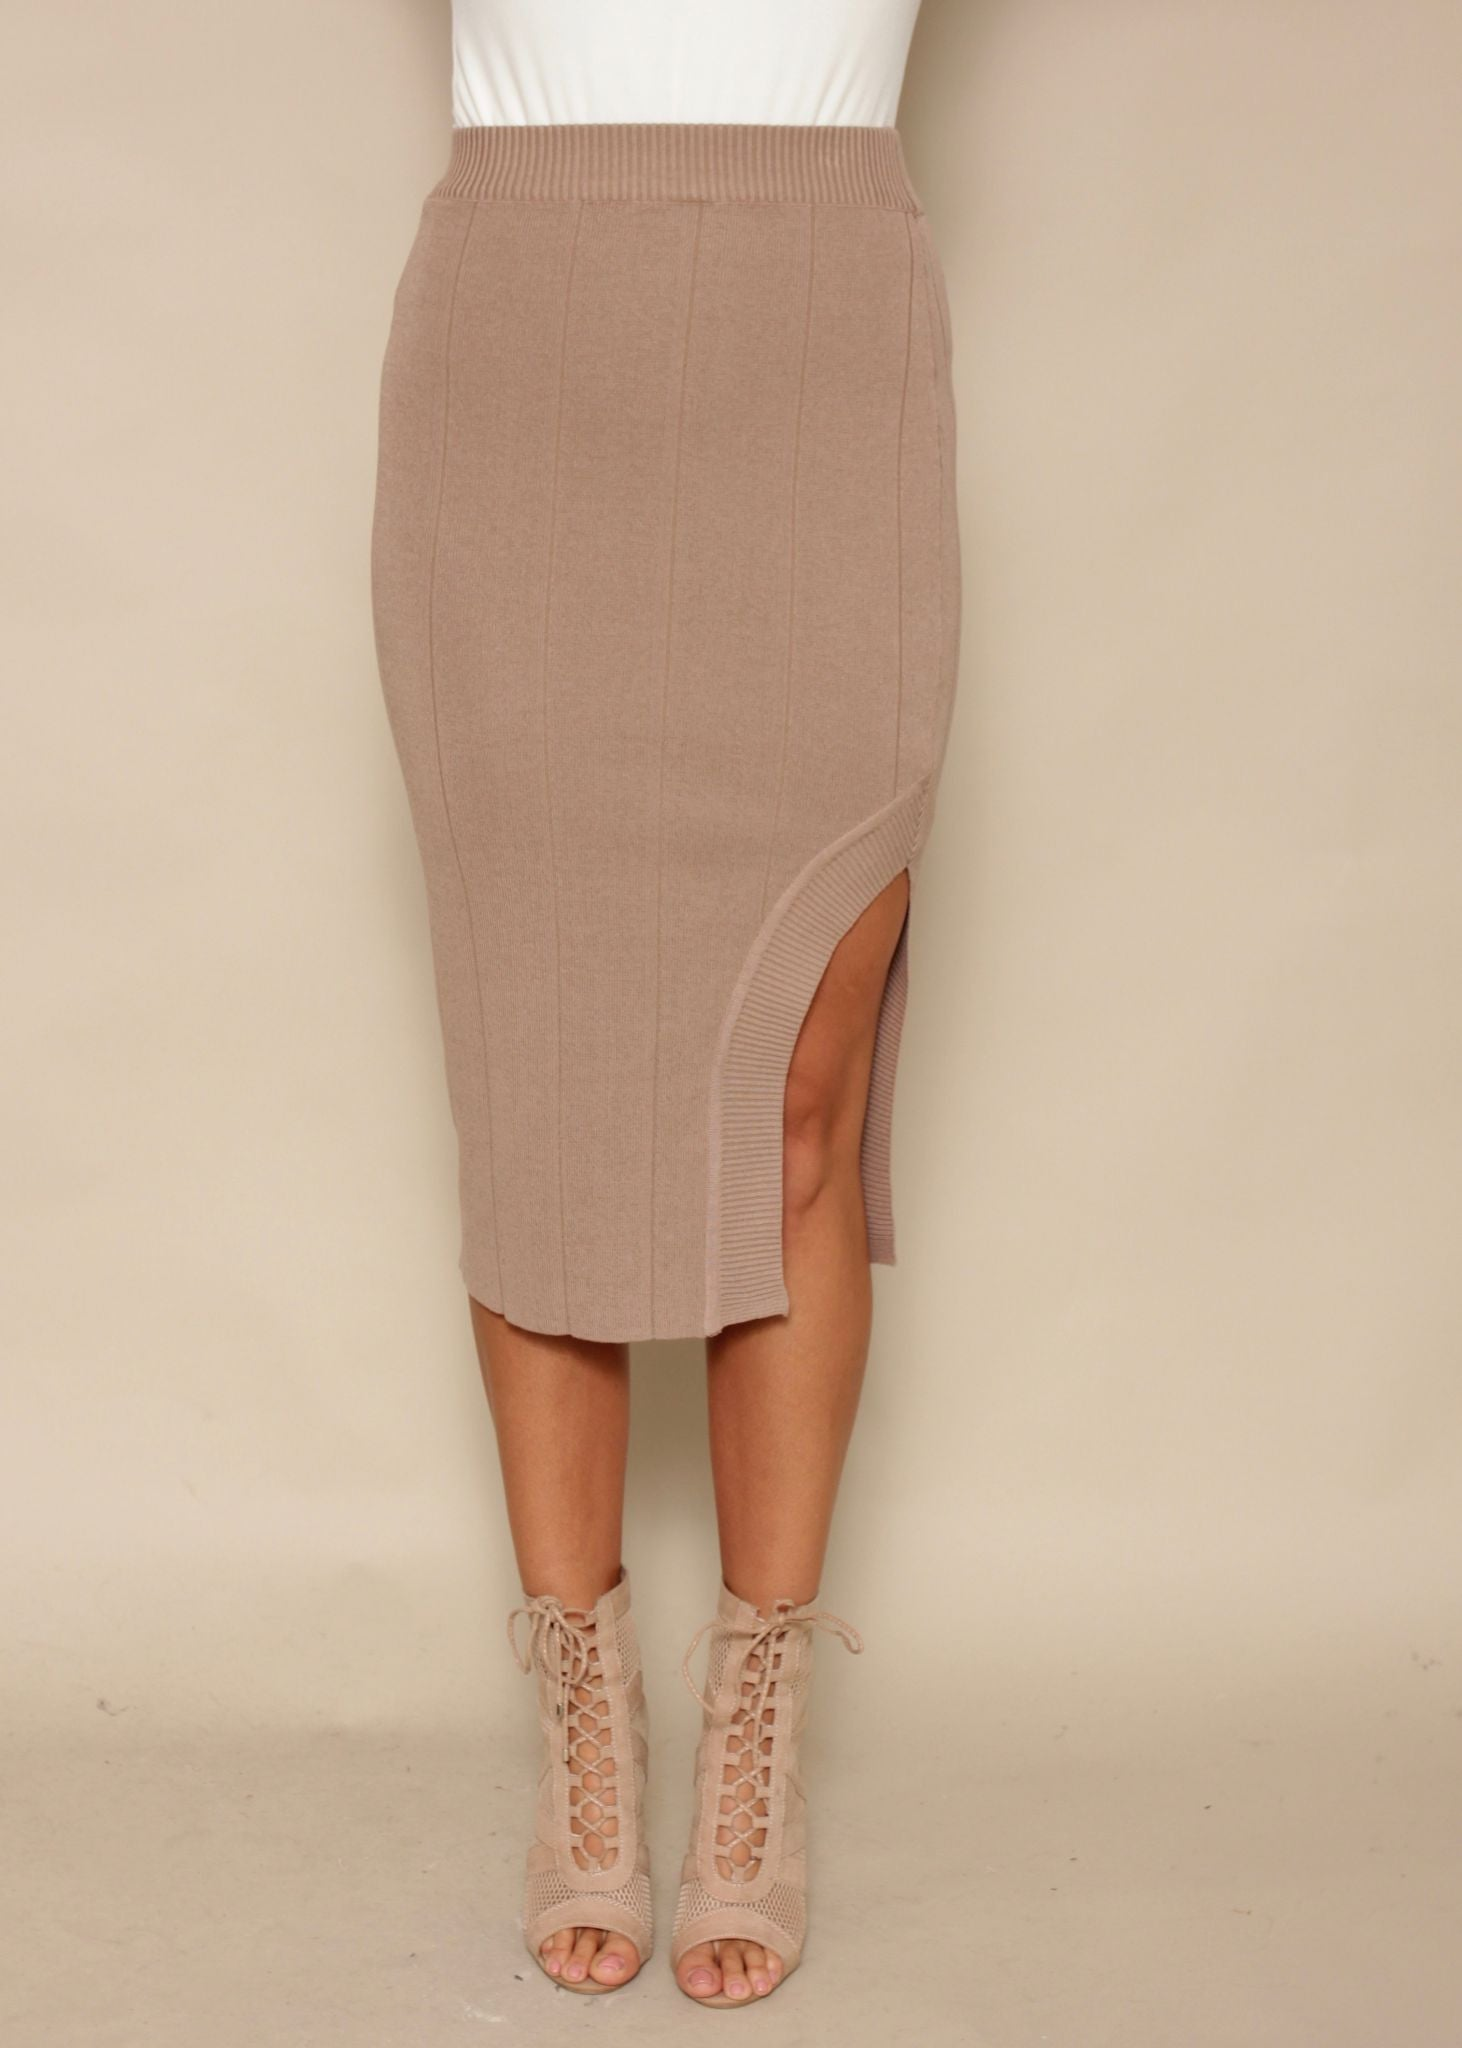 Fine Line Knit Skirt - Nude